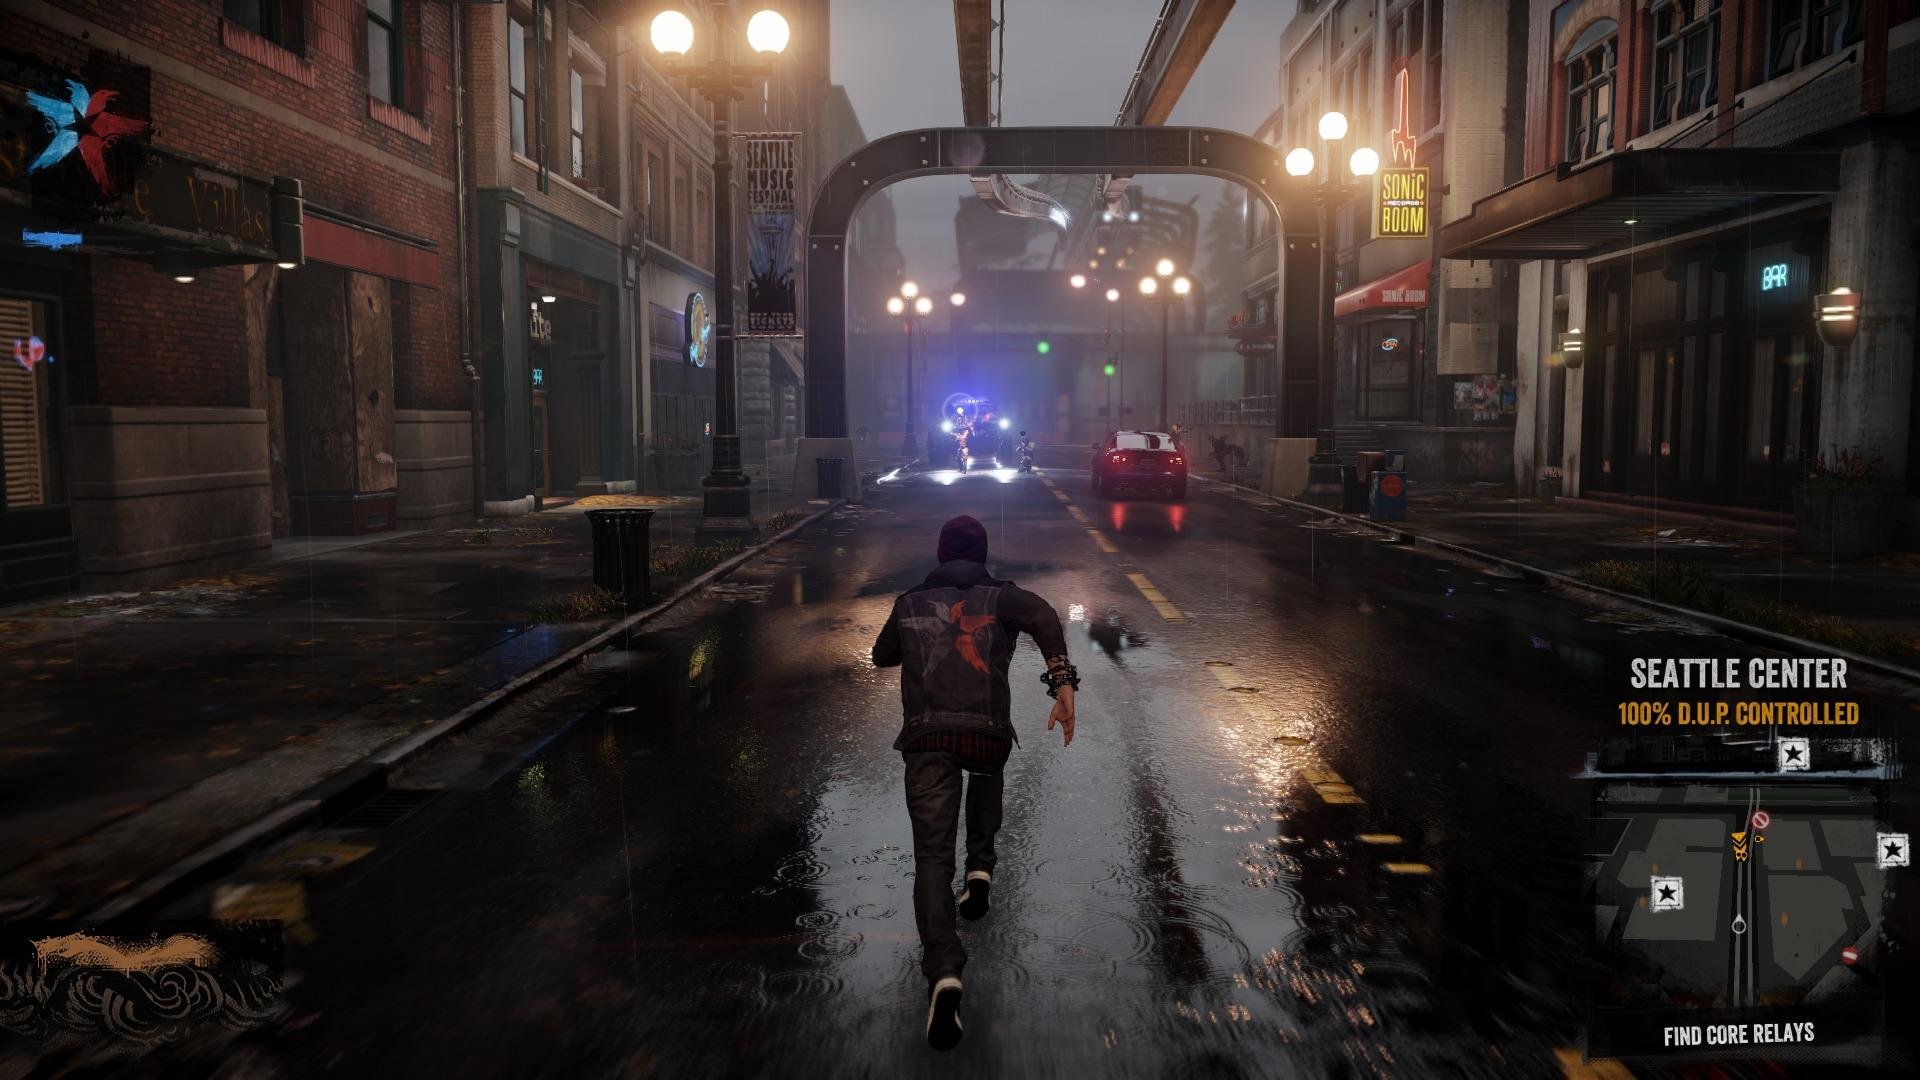 World Best Car Hd Wallpaper 1080p New Infamous Second Son In Game Gif Amp Screenshots Show